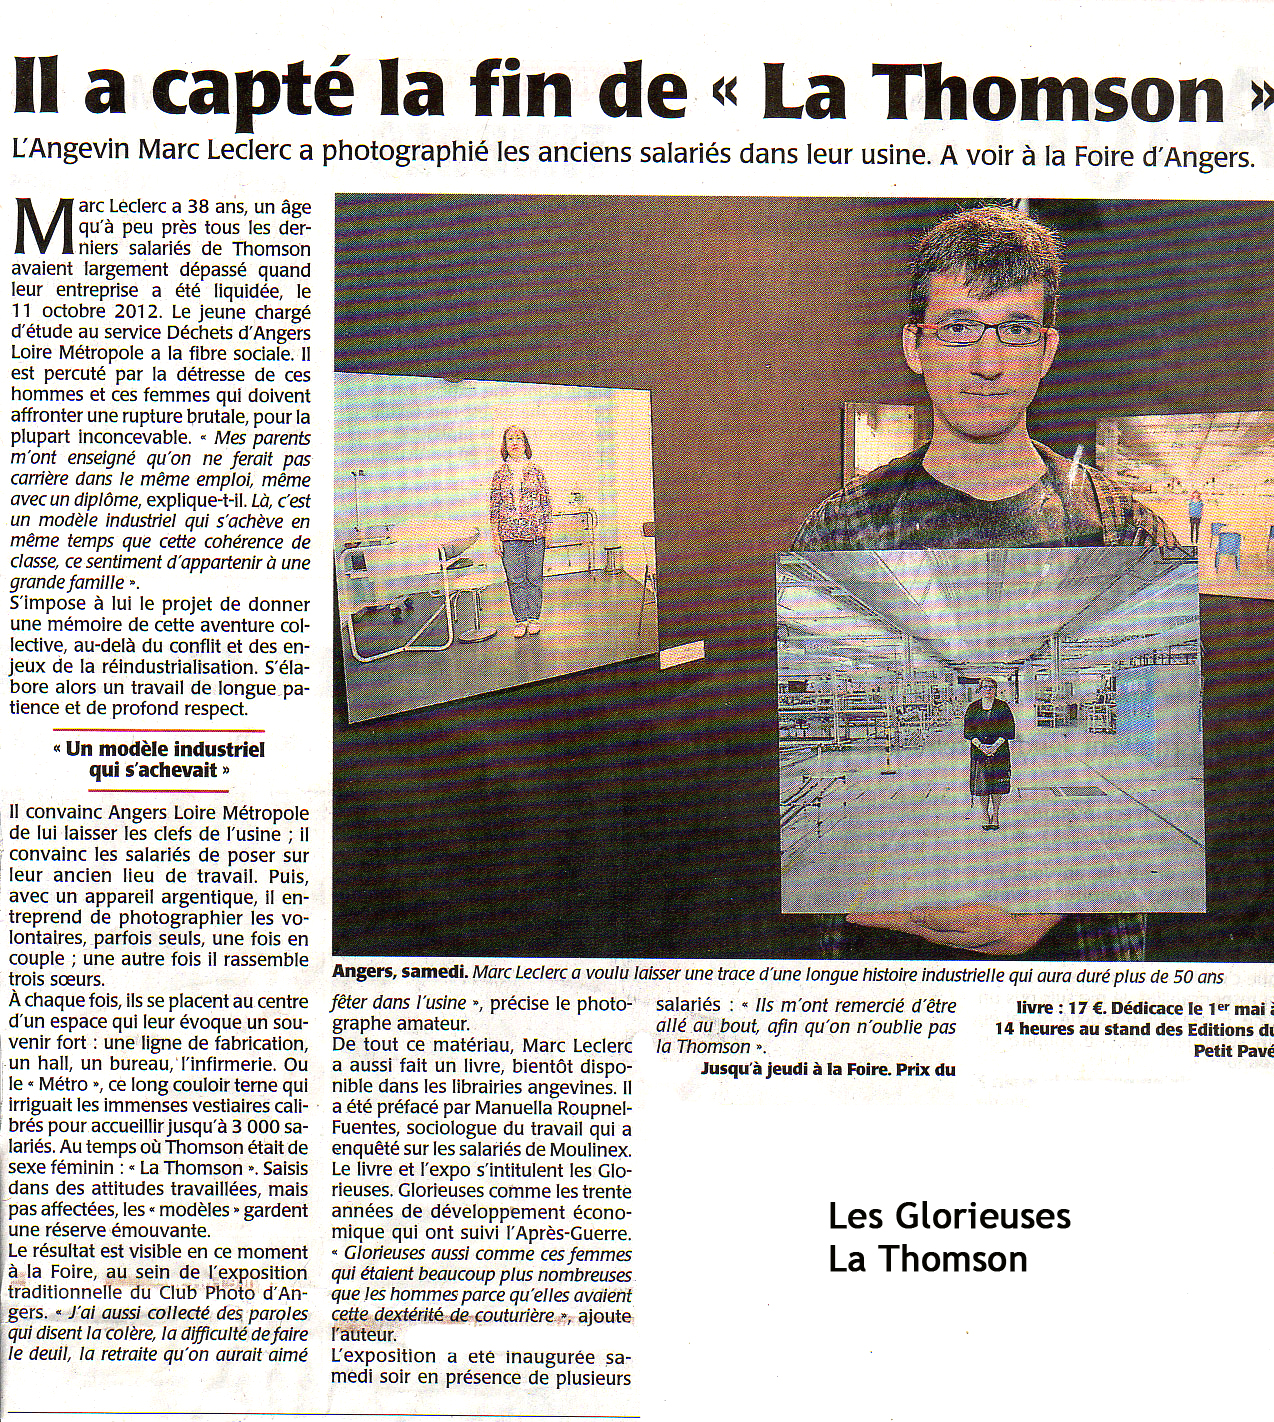 Les Glorieuses - La Thomson - Document Thomson-article.jpg